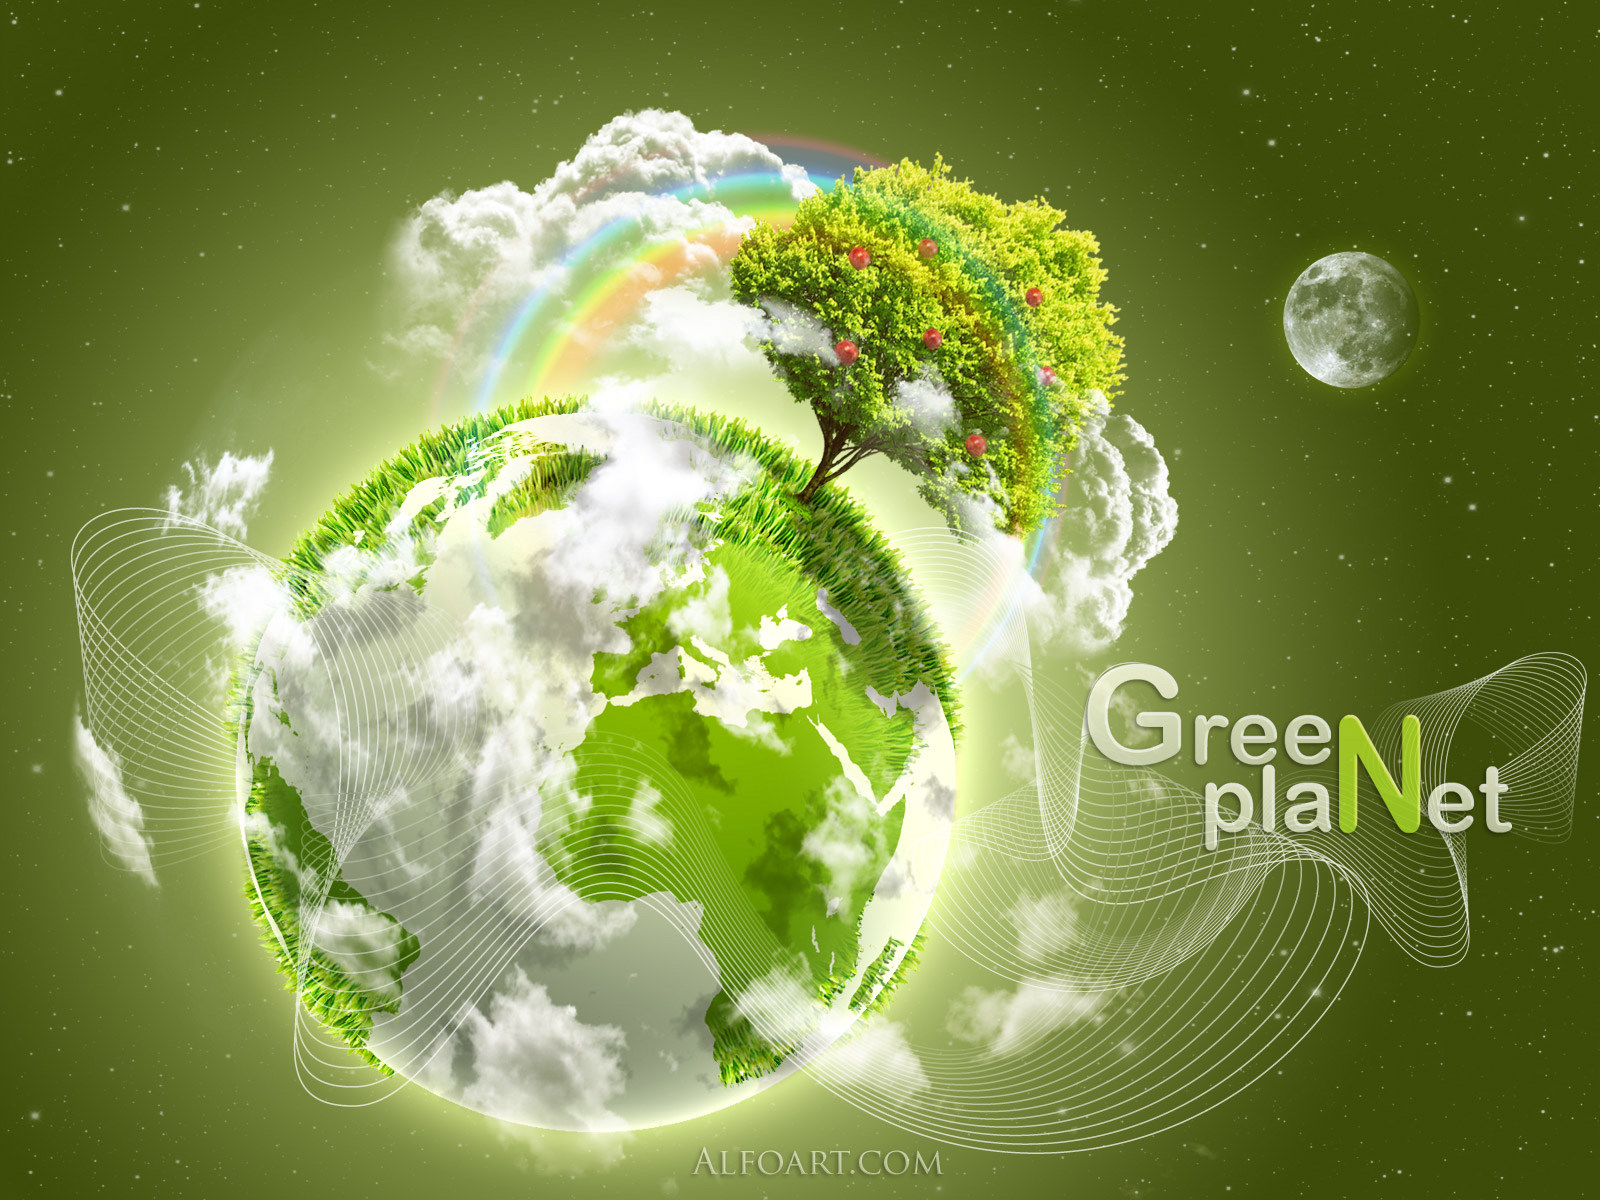 Green Planet Celebratet Earth Day April 22, 2013